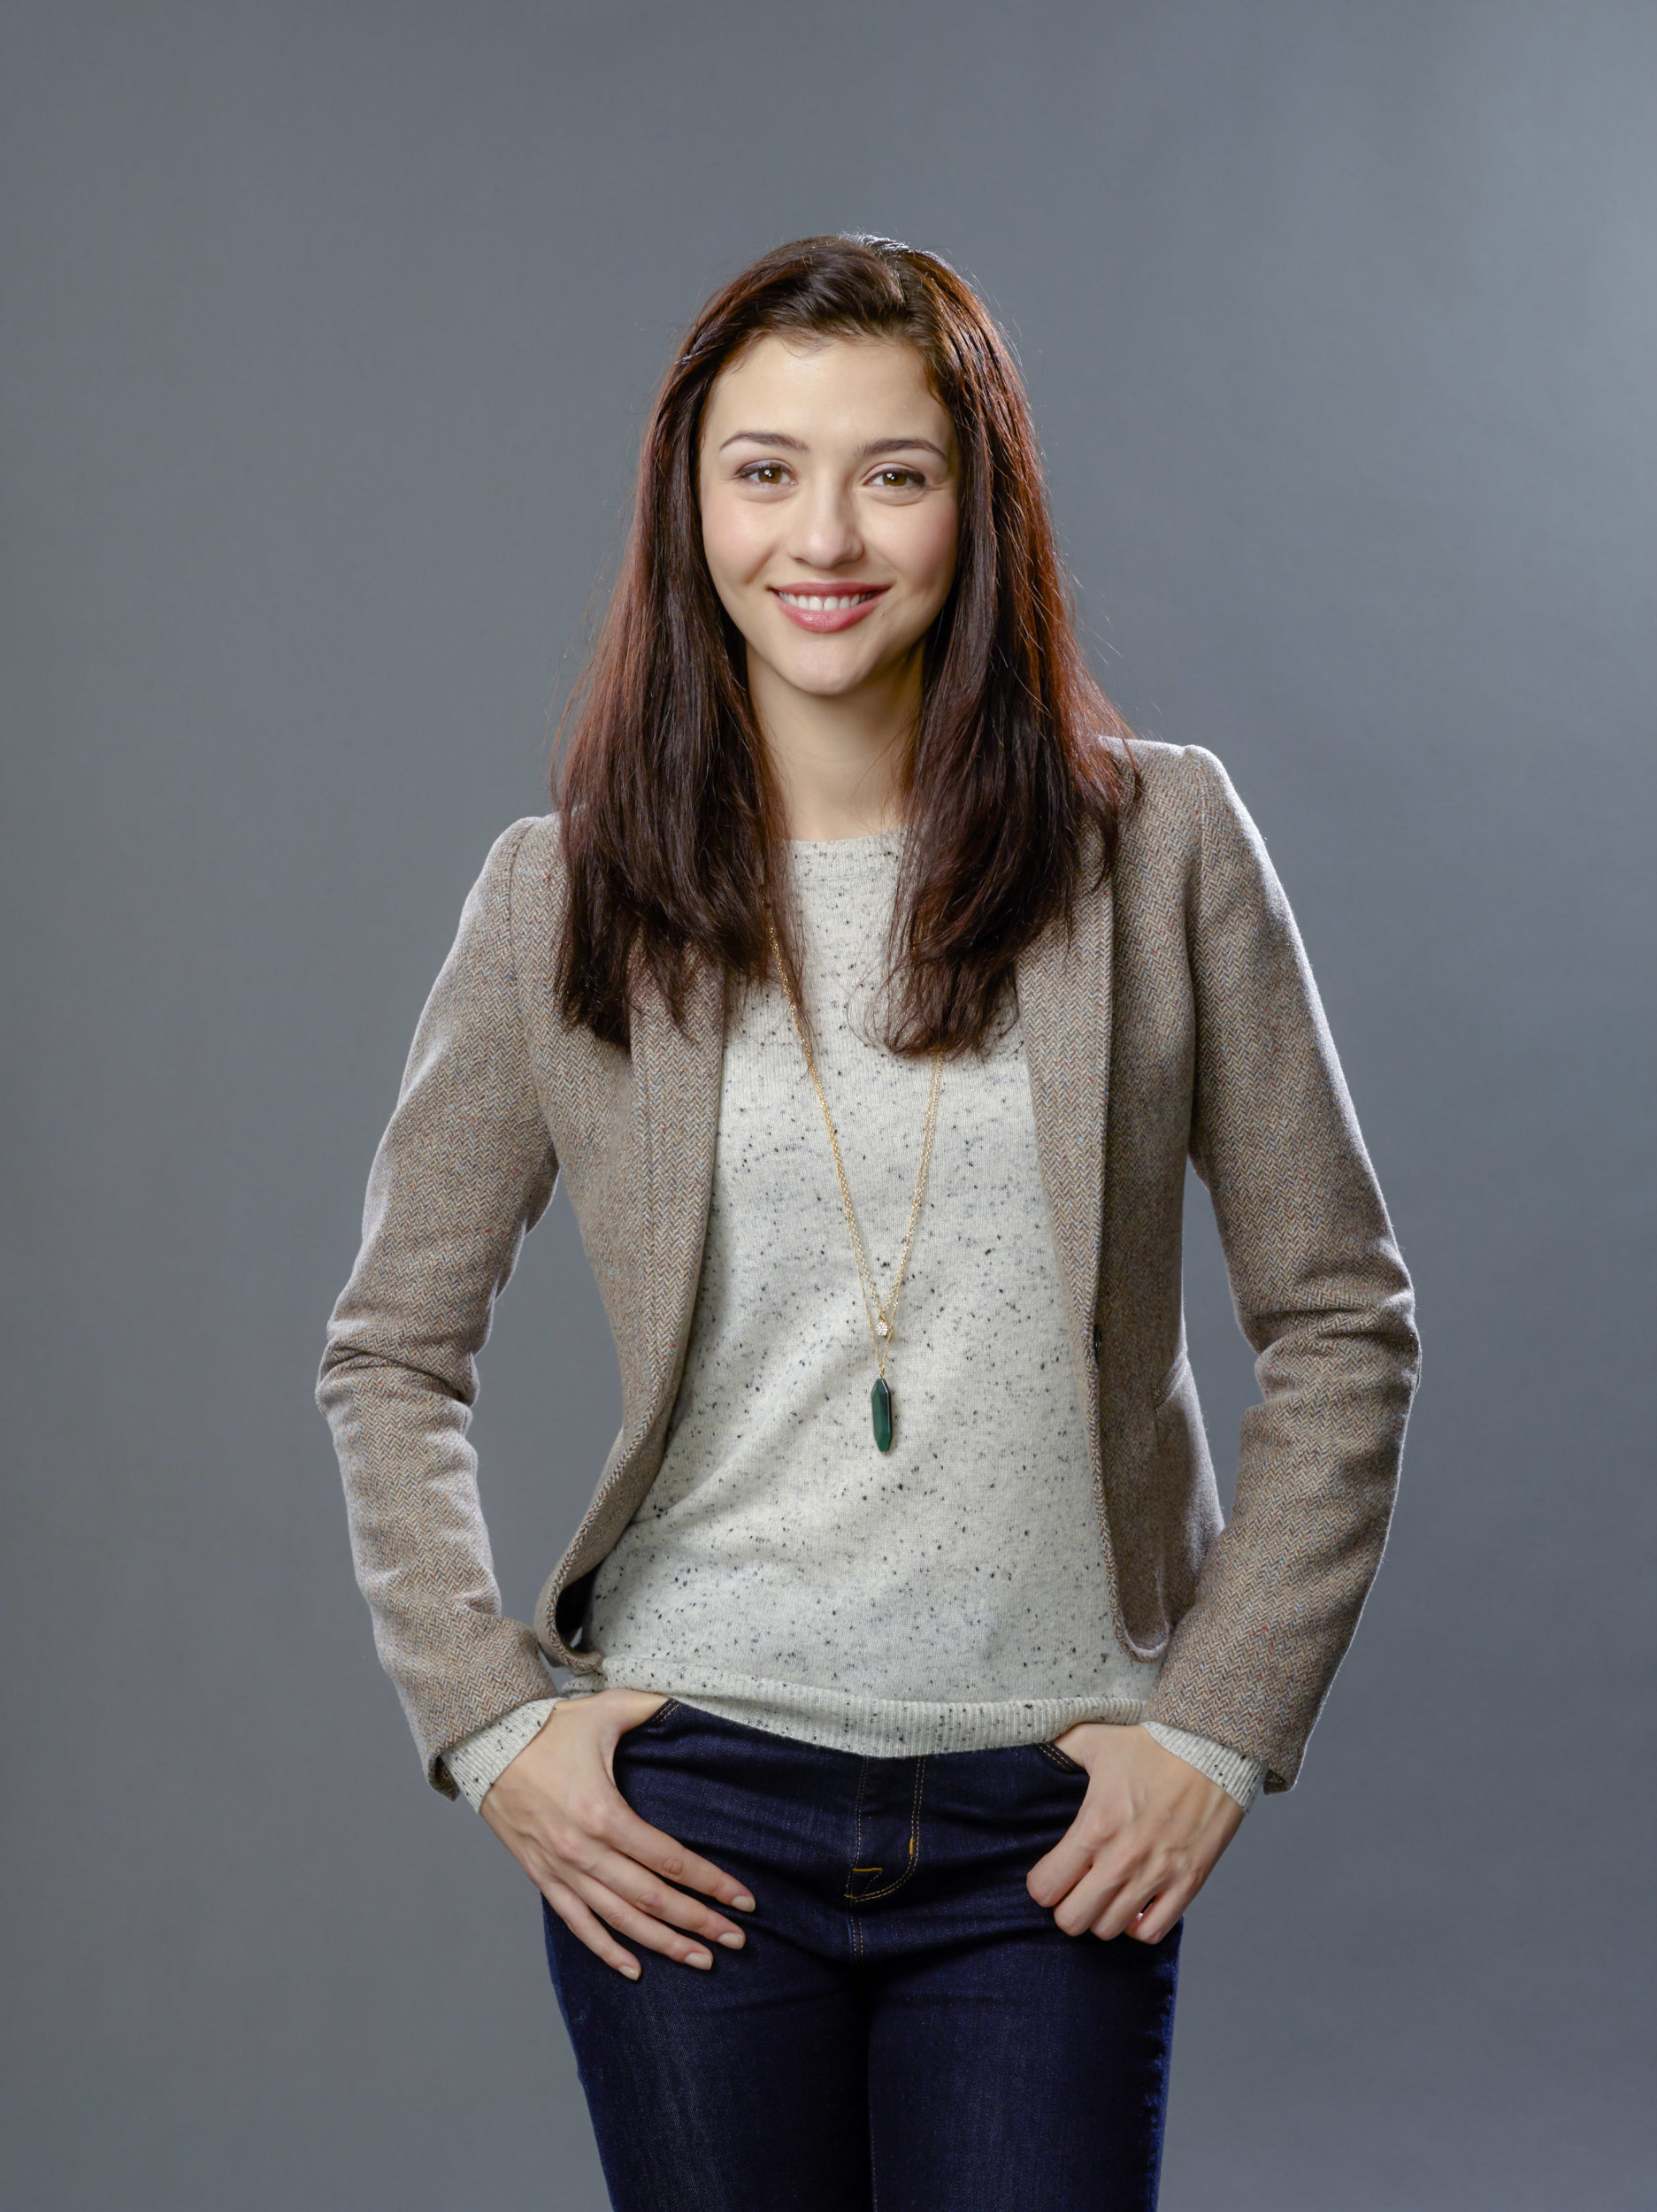 Katie Findlay as Molly in